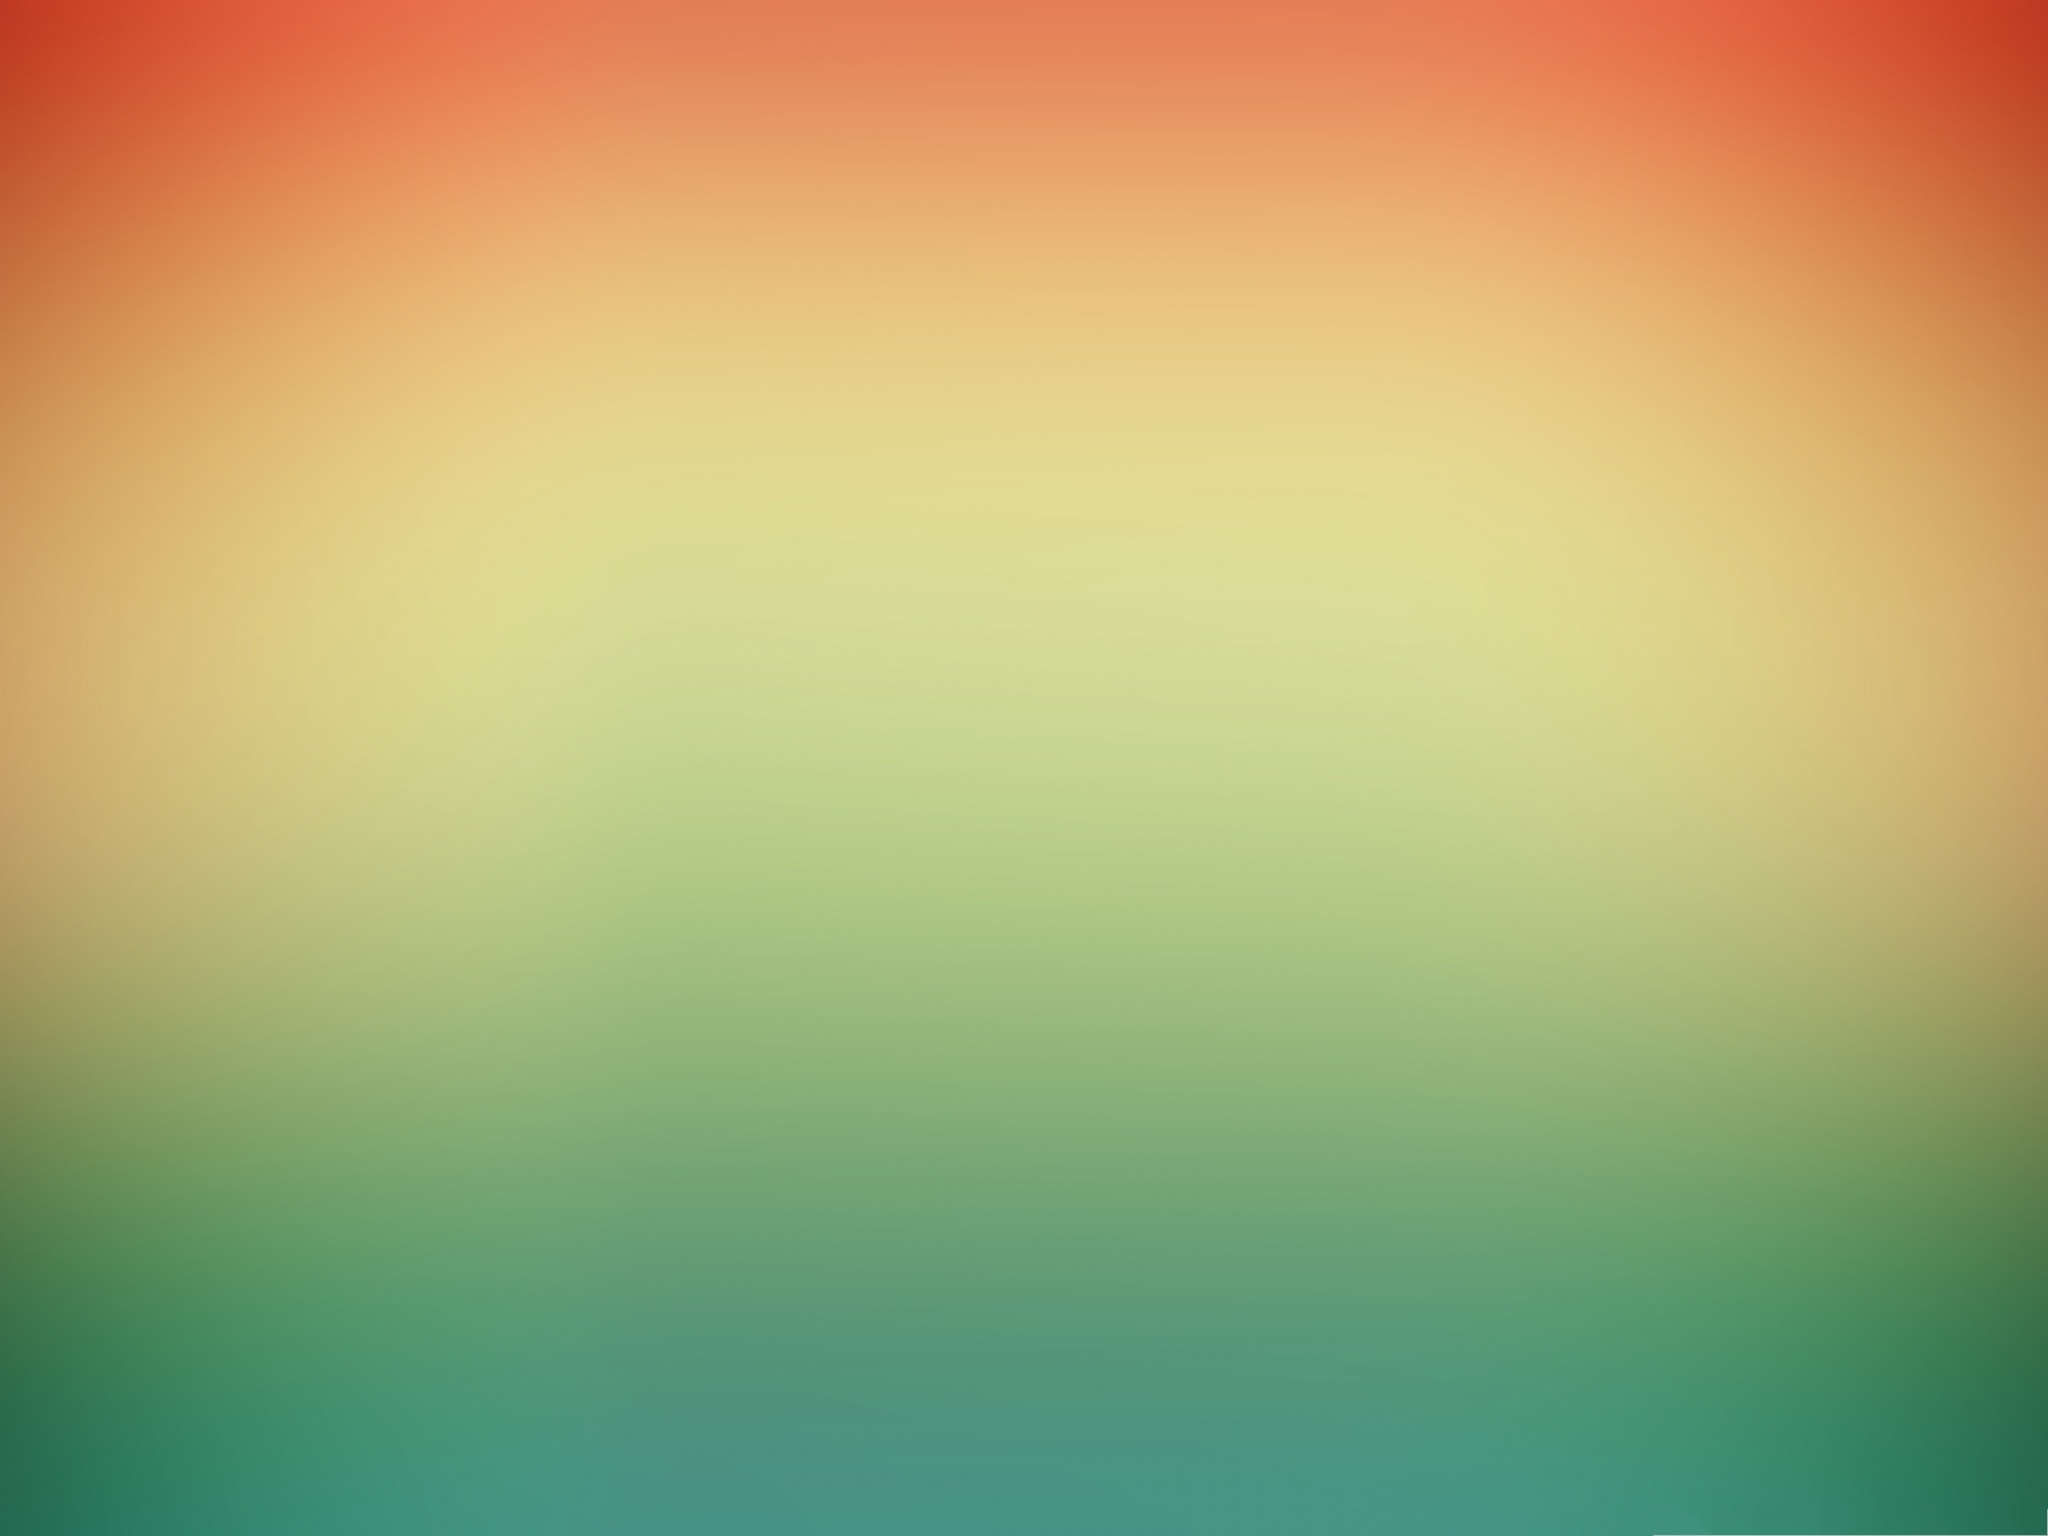 Computer Wallpapers Hd Retro Colors Background Fit For Coloring Background